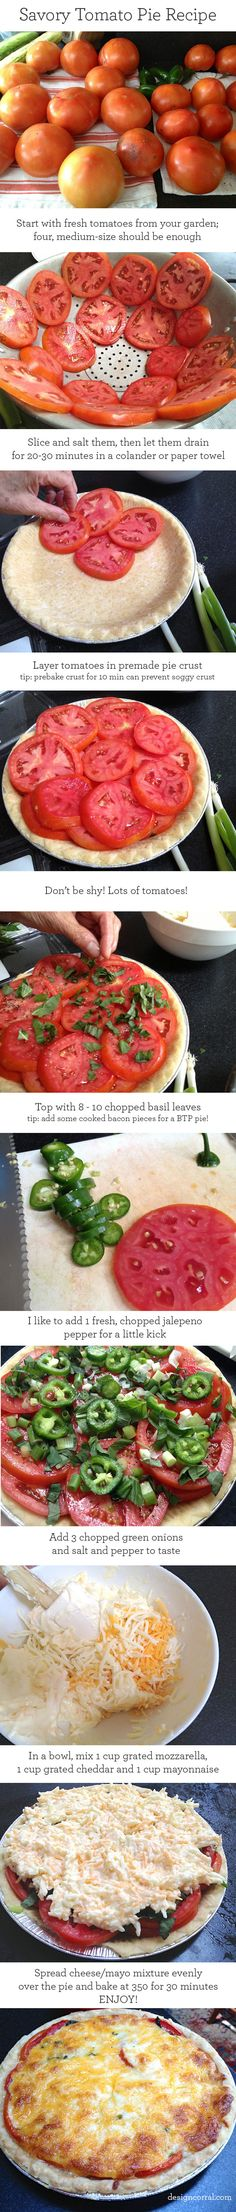 Savory Tomato Pie Recipe | Design Corral | Wedding Favors and Accessories